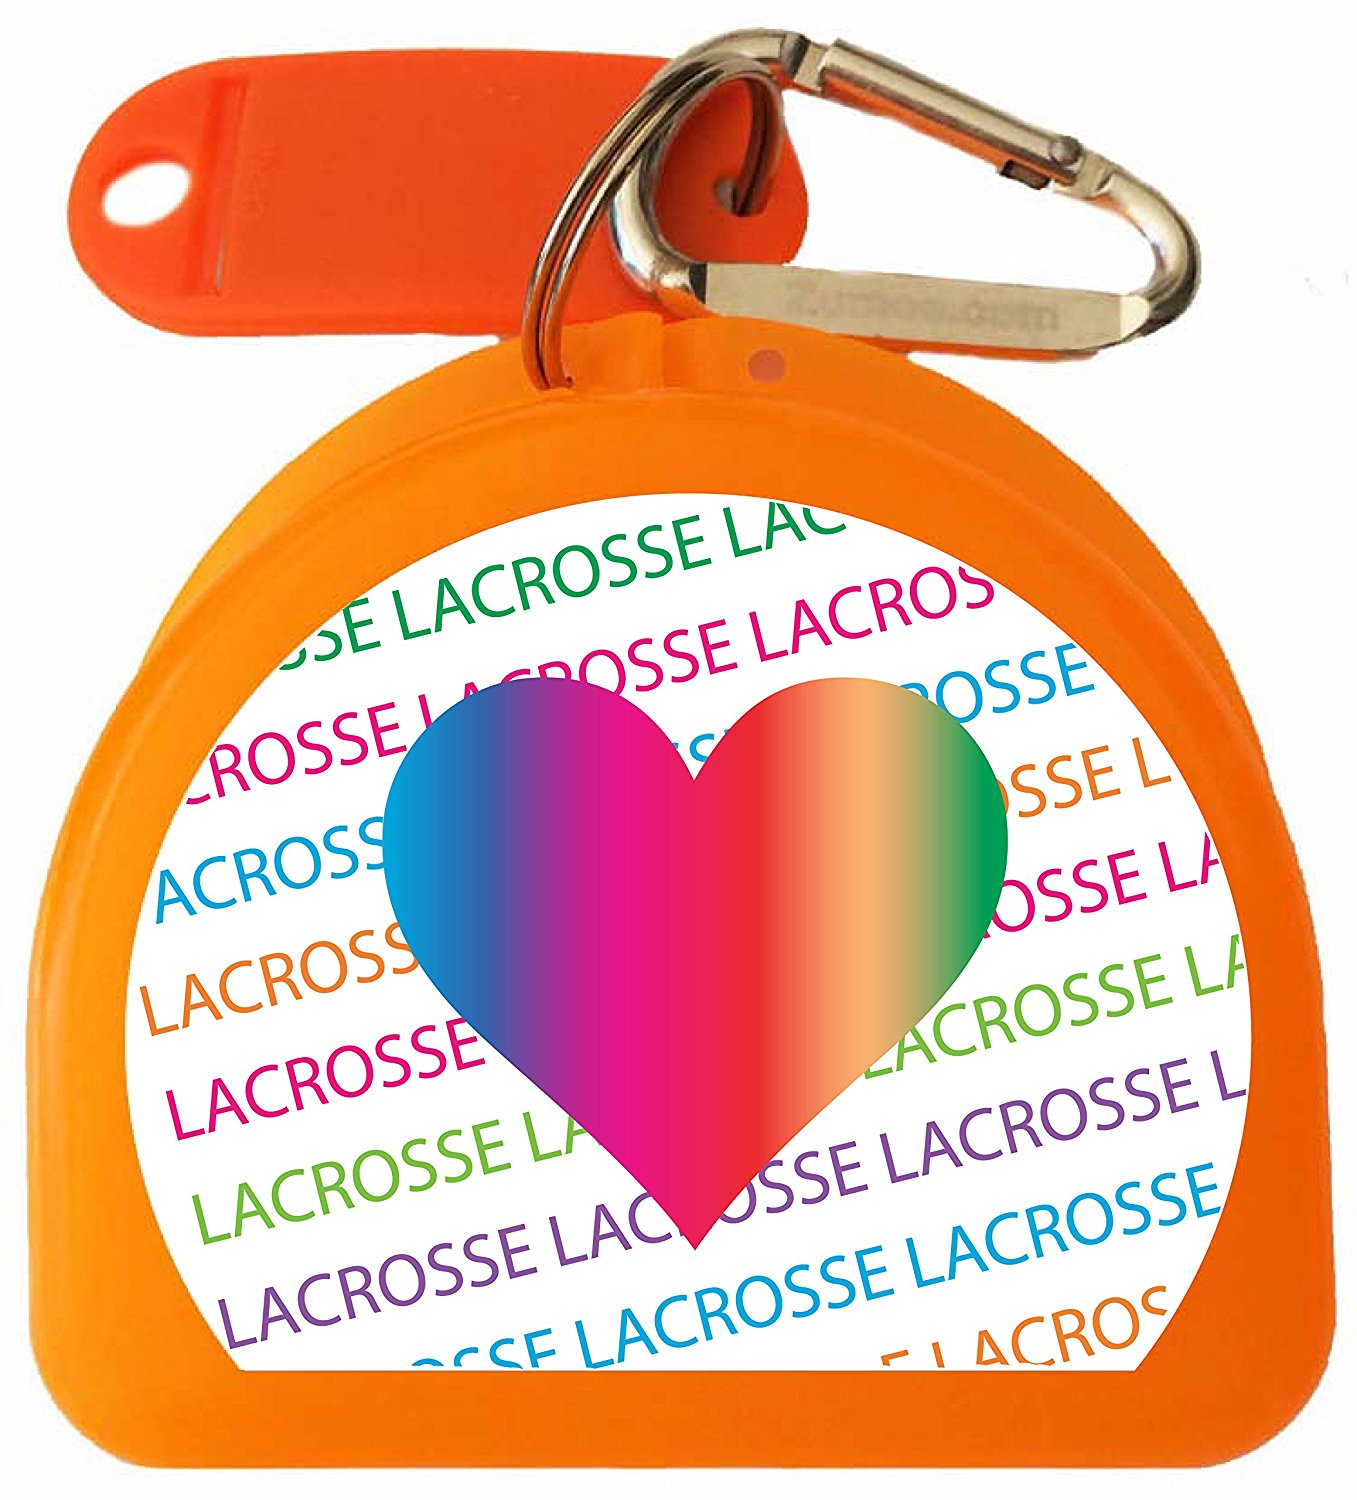 Zumoe Lacrosse Mouth Guard Case Lacrosse Mouthguard Case Lacrosse Retainer Case or Lacrosse Dental Case Called LAX, over 50 Designs and 9 Colored Cases Available